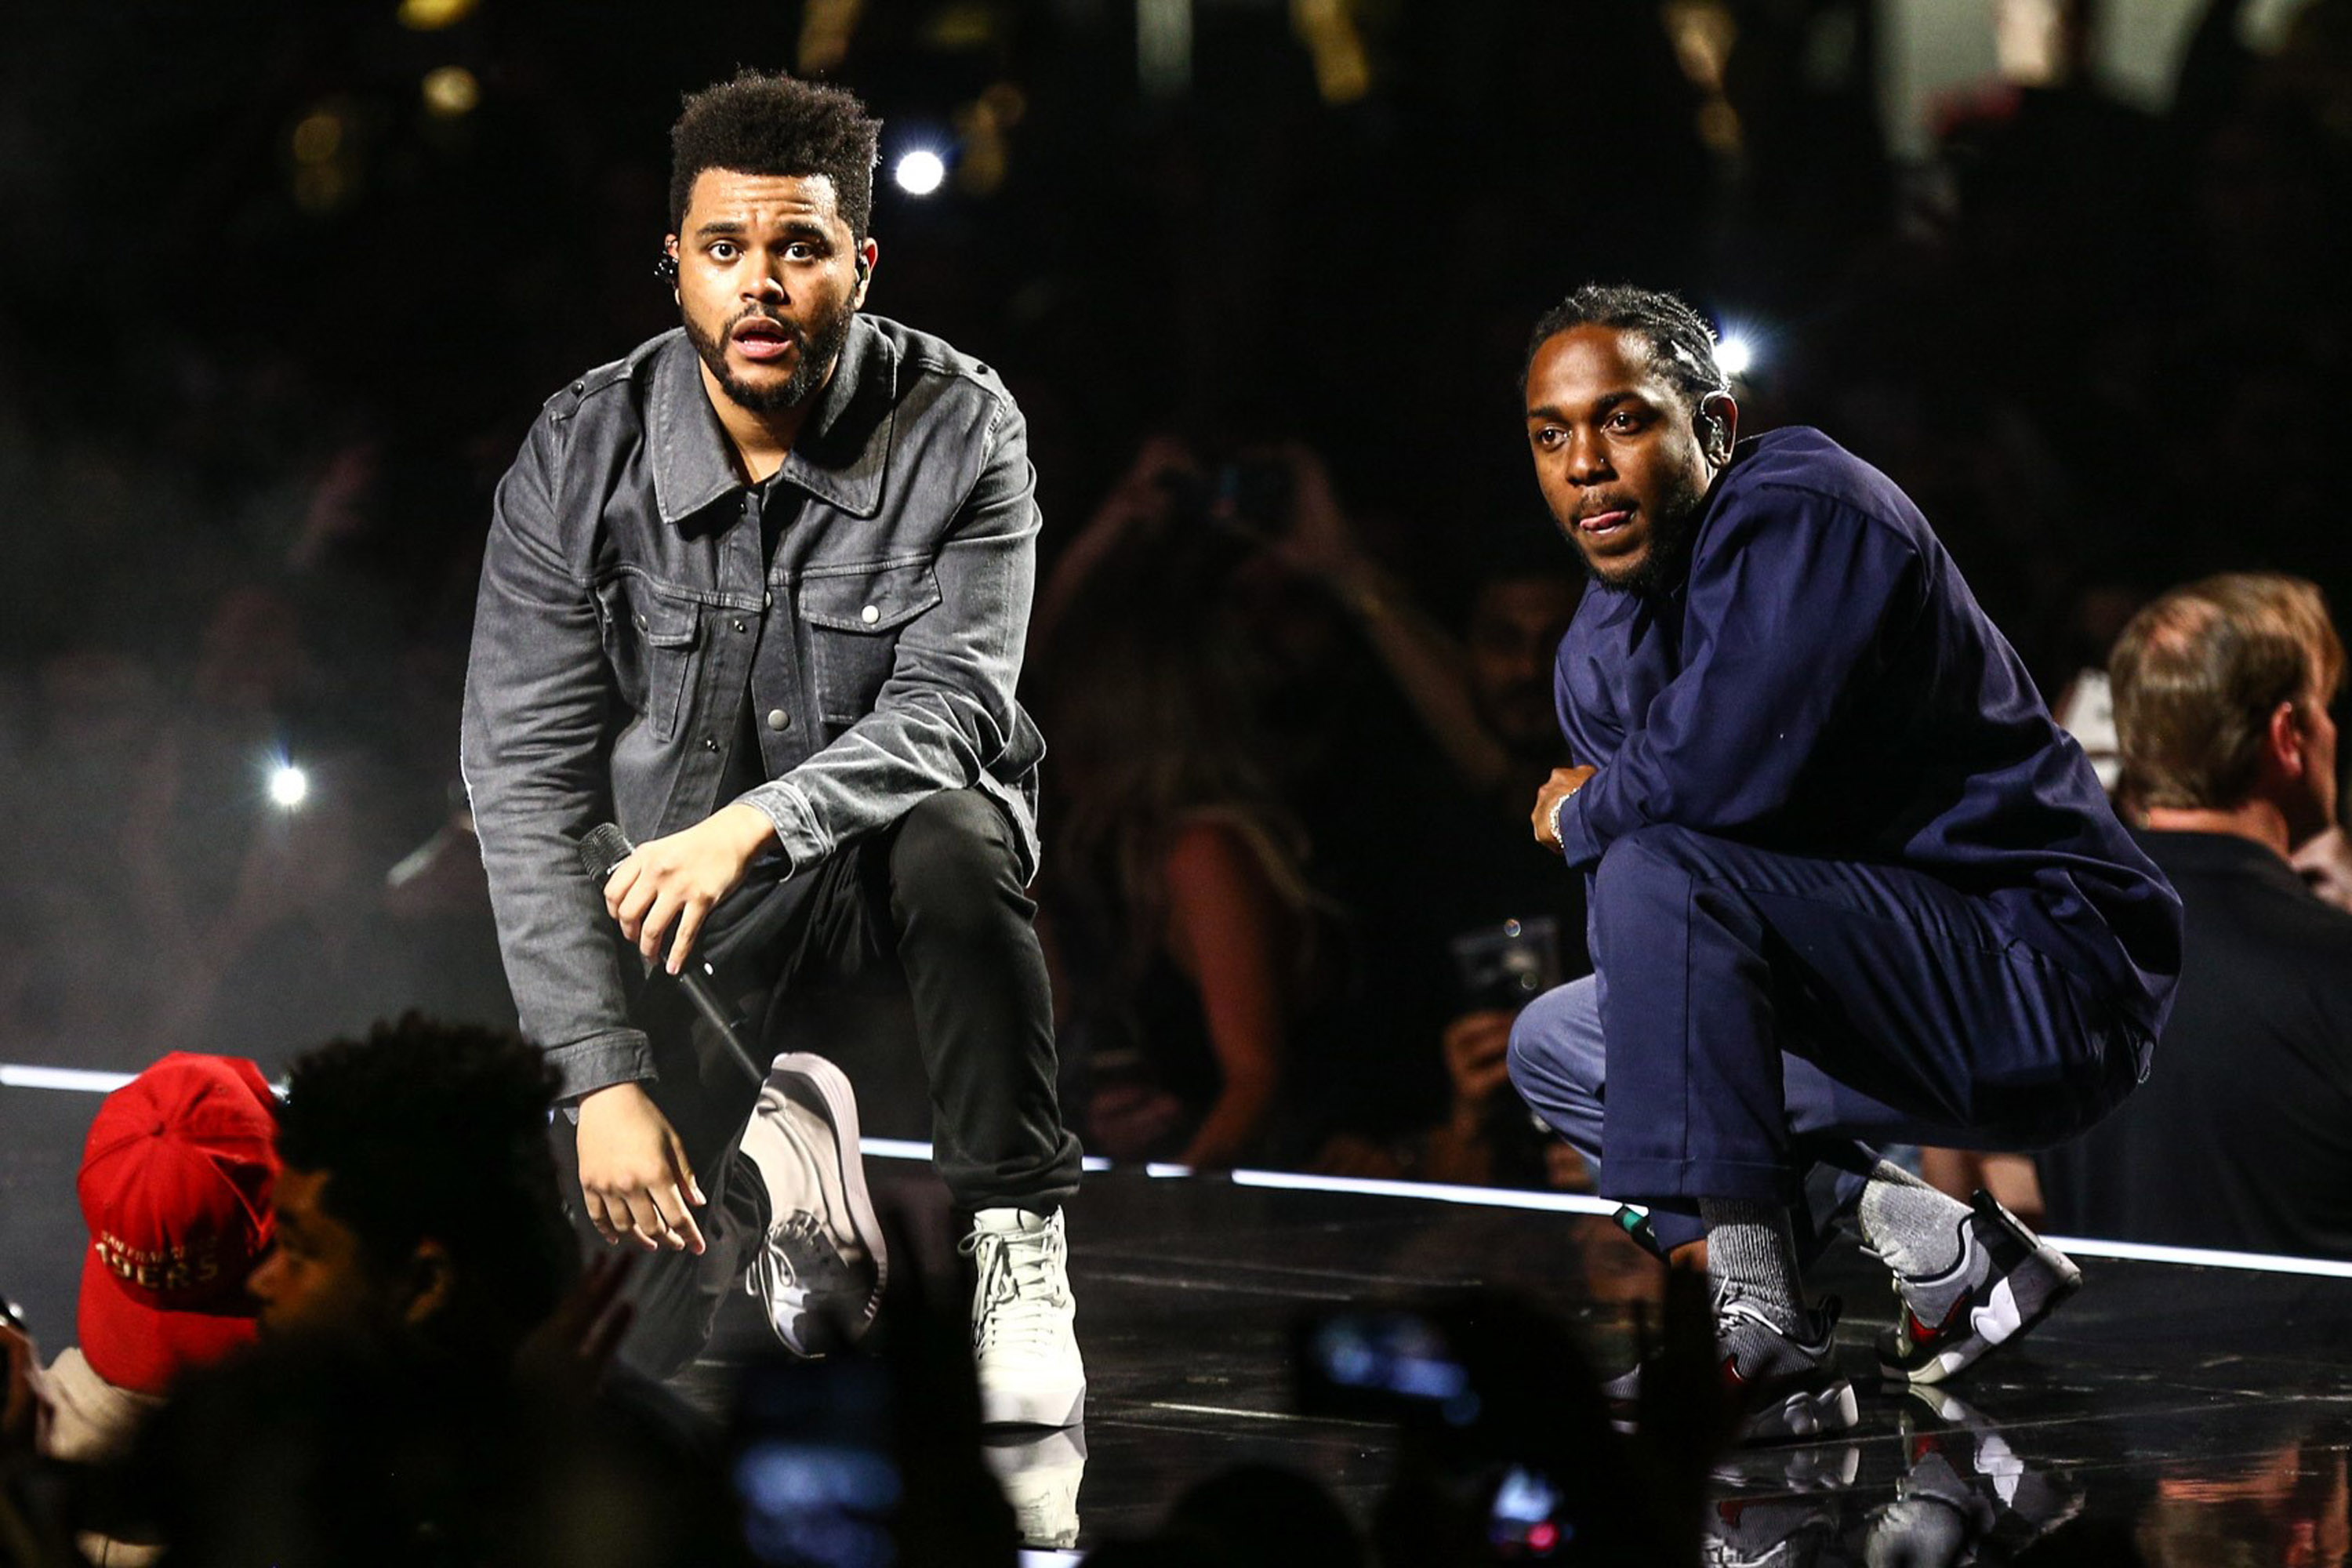 Two rappers kneel on stage.